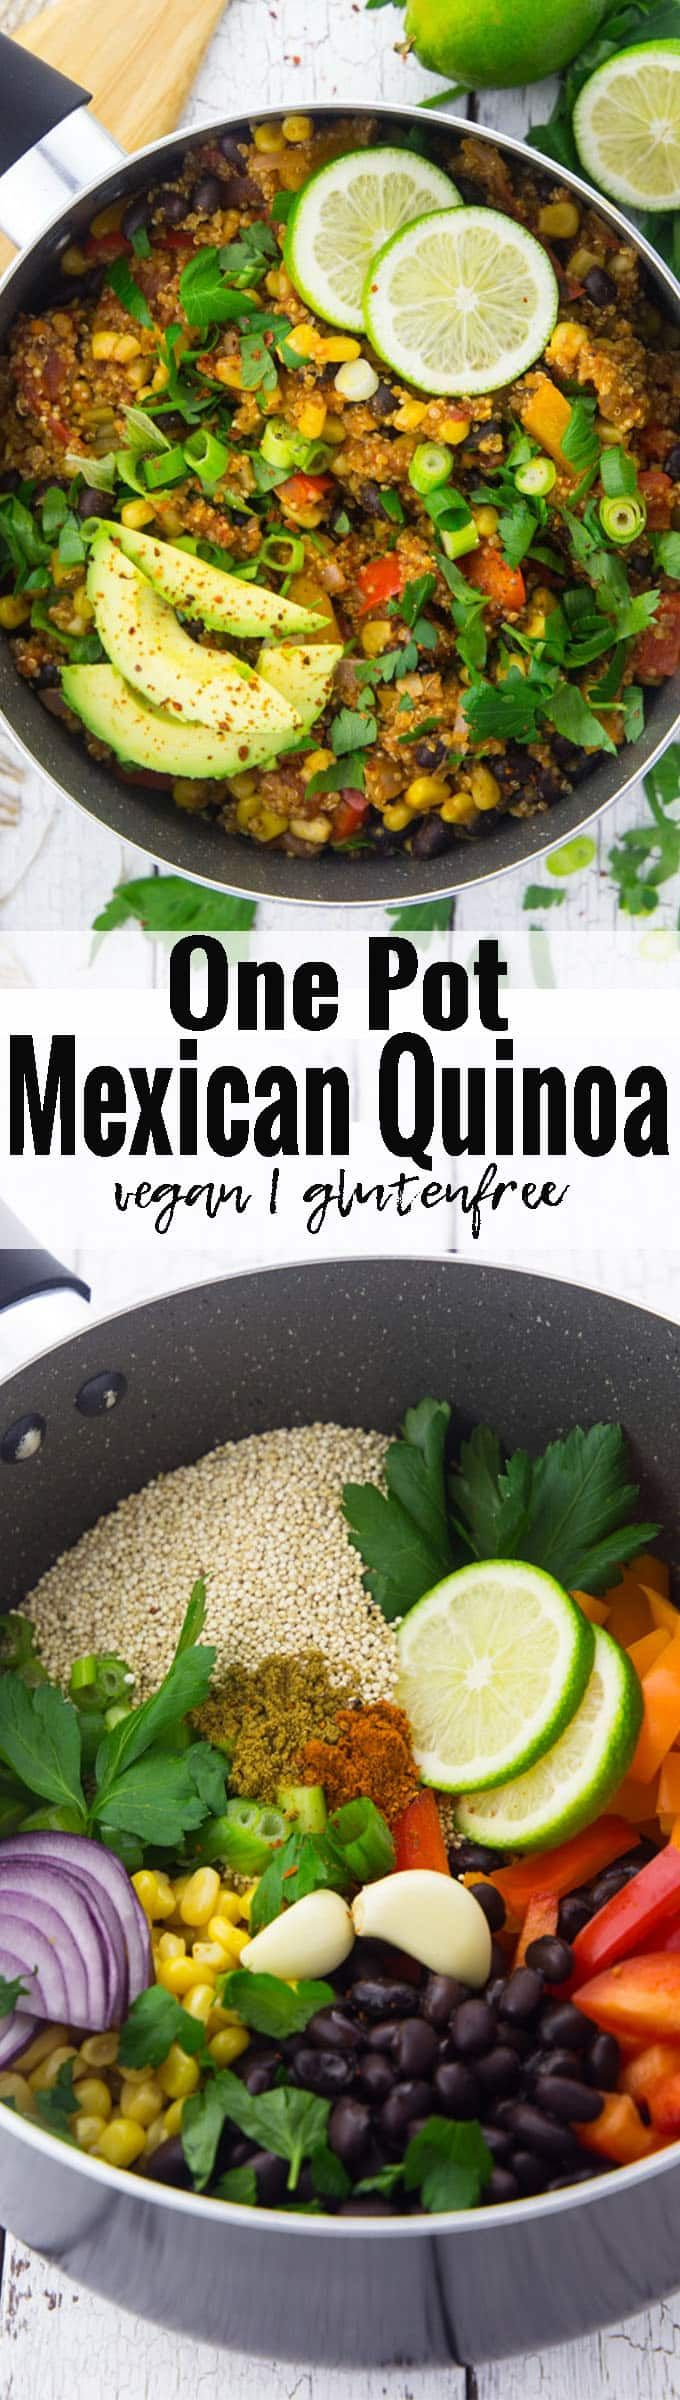 This vegan one pot Mexican quinoa with black beans and corn is one of my favorite vegan weeknight dinners! It's super easy to make, incredibly healthy, and so delicious. Plus, it's packed with protein! Serve it with fresh parsley and avocado for an extra boost of nutrients. Vegan food can be so simple and delicious!! | Find more vegan recipes at veganheaven.org <3